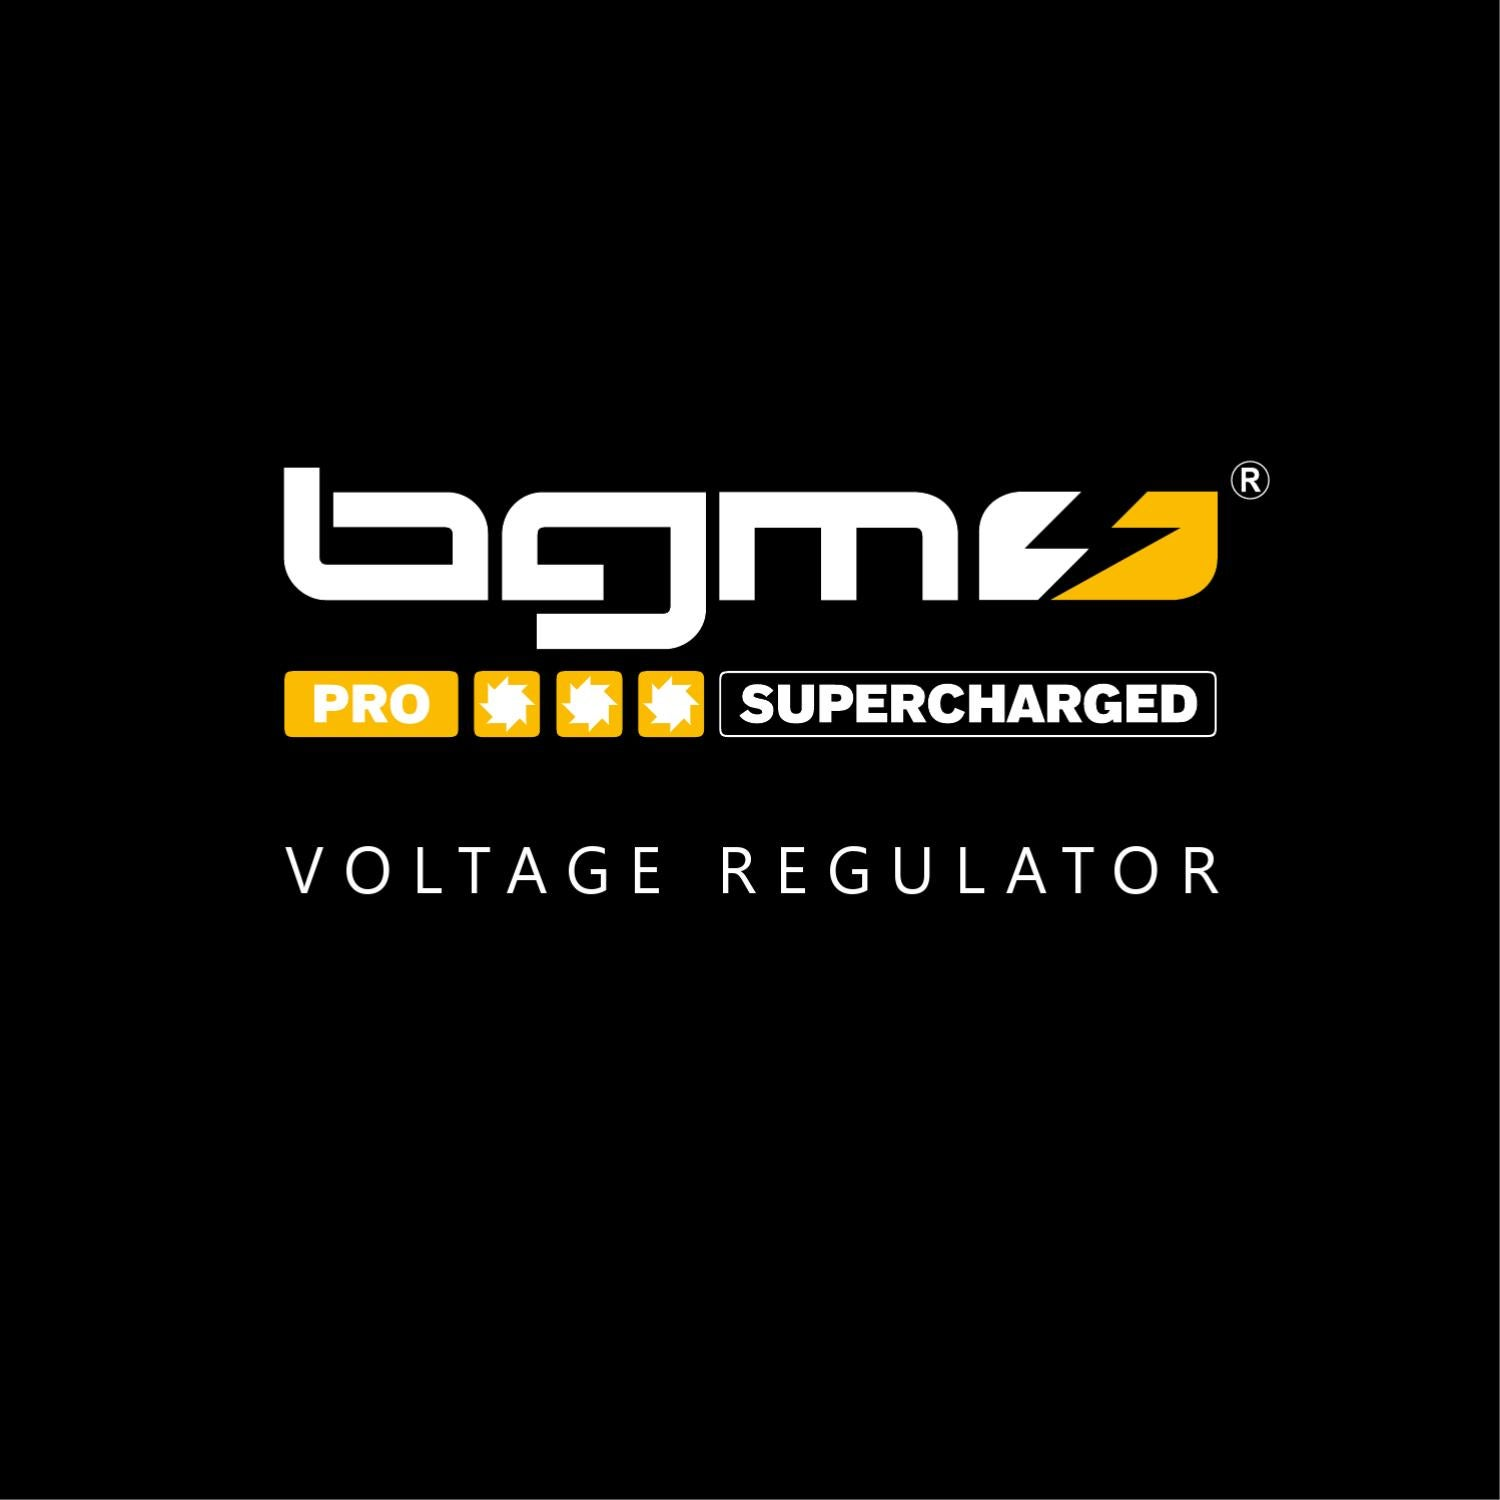 hight resolution of bgm 12v ac dc regulator instruction manual by casa lambretta jet200 performance issuu